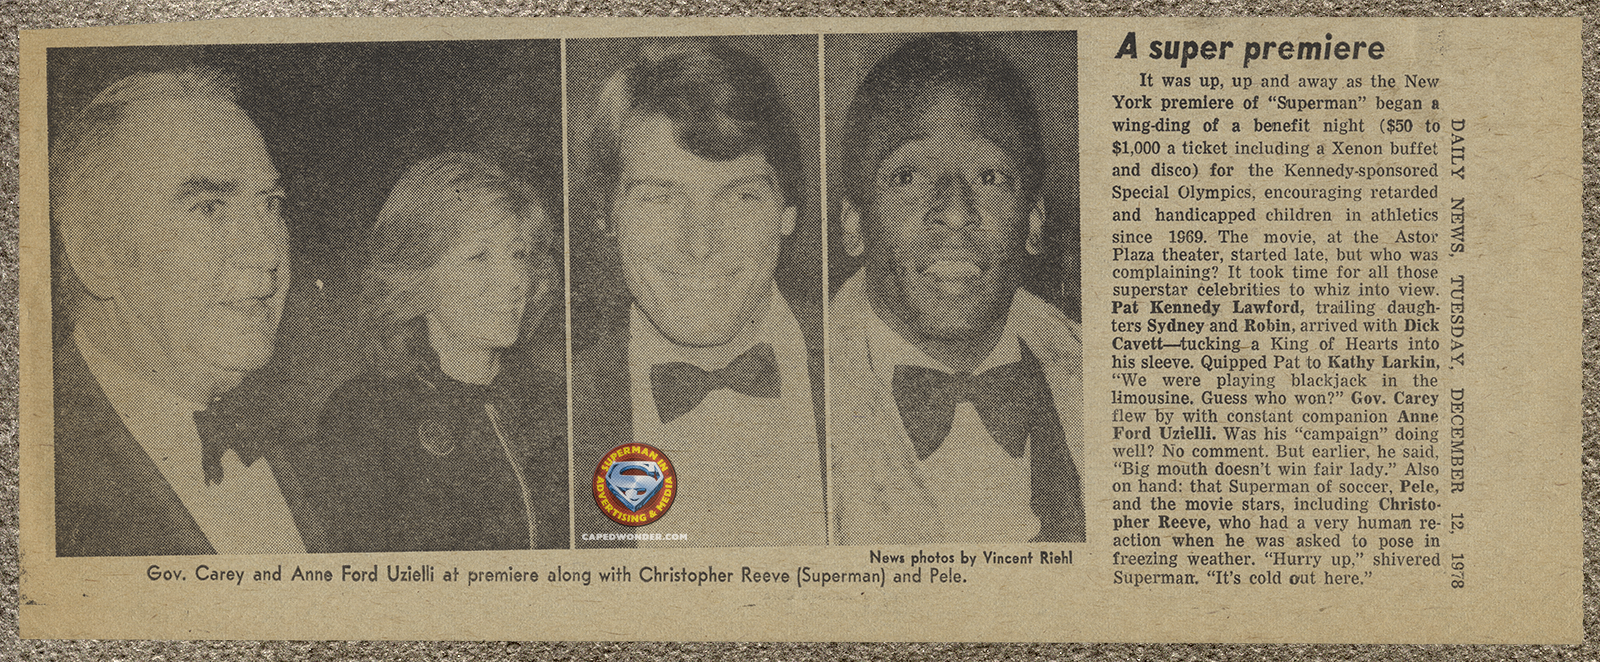 CW-STM-SAM-New-York-Daily-News-movie-premiere-Dec-12-78